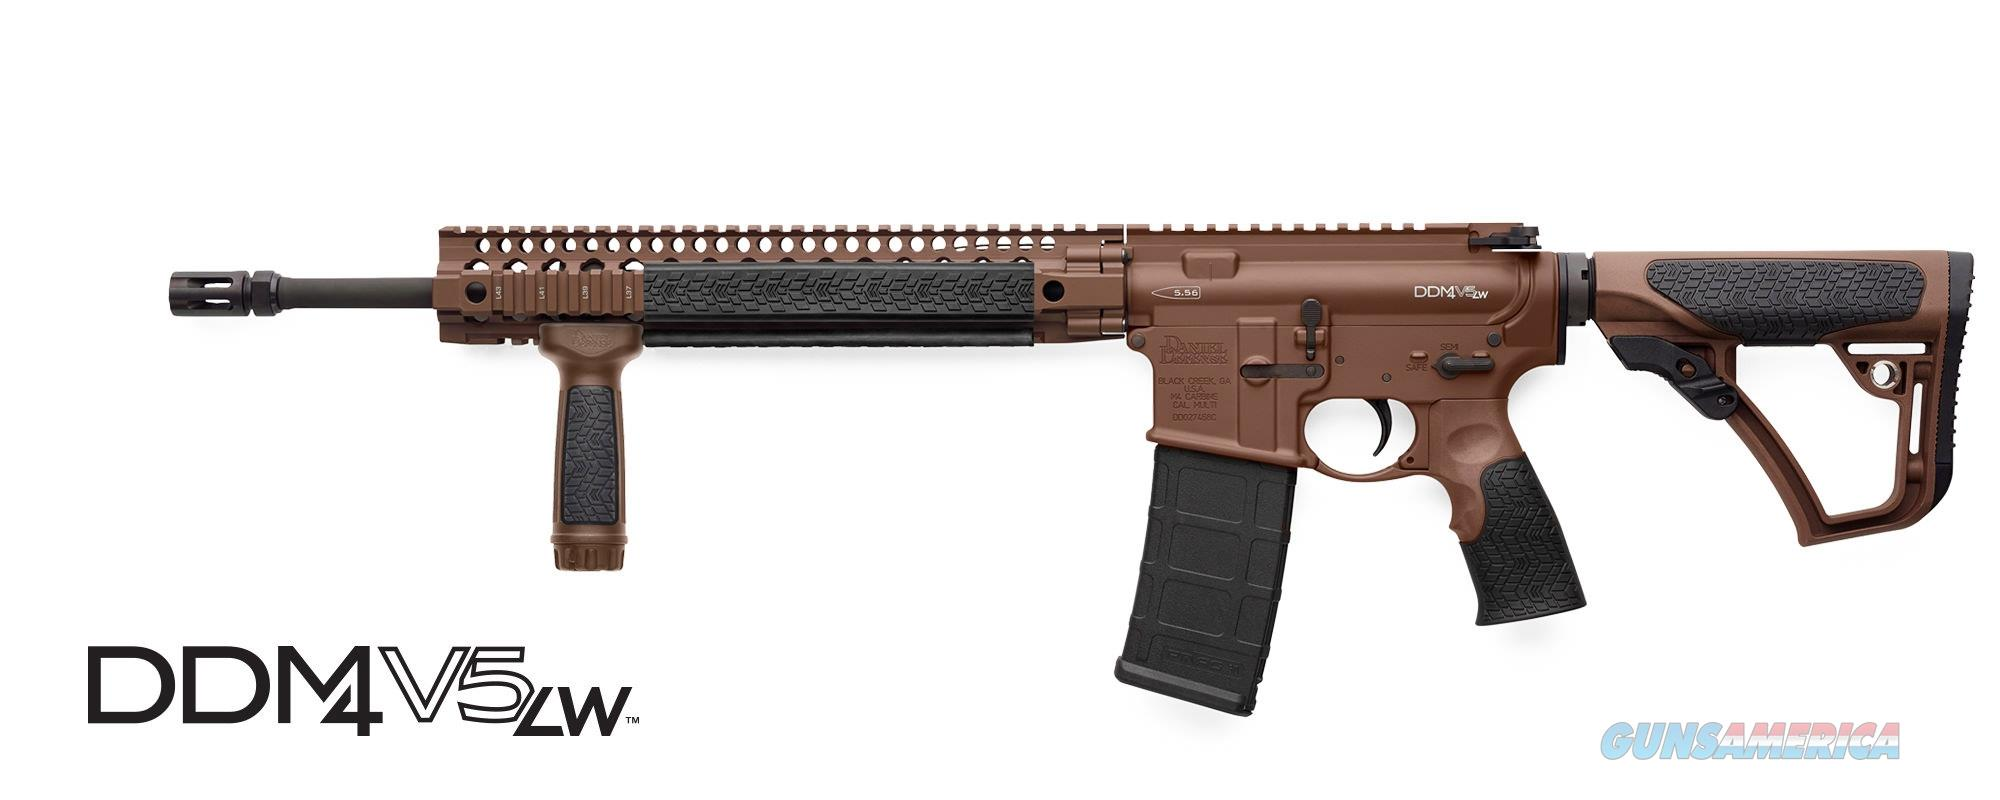 "Daniel Defense DDM4V5LW FDE 5.56 16"" 02-123-13028-047   Guns > Rifles > Daniel Defense > Complete Rifles"